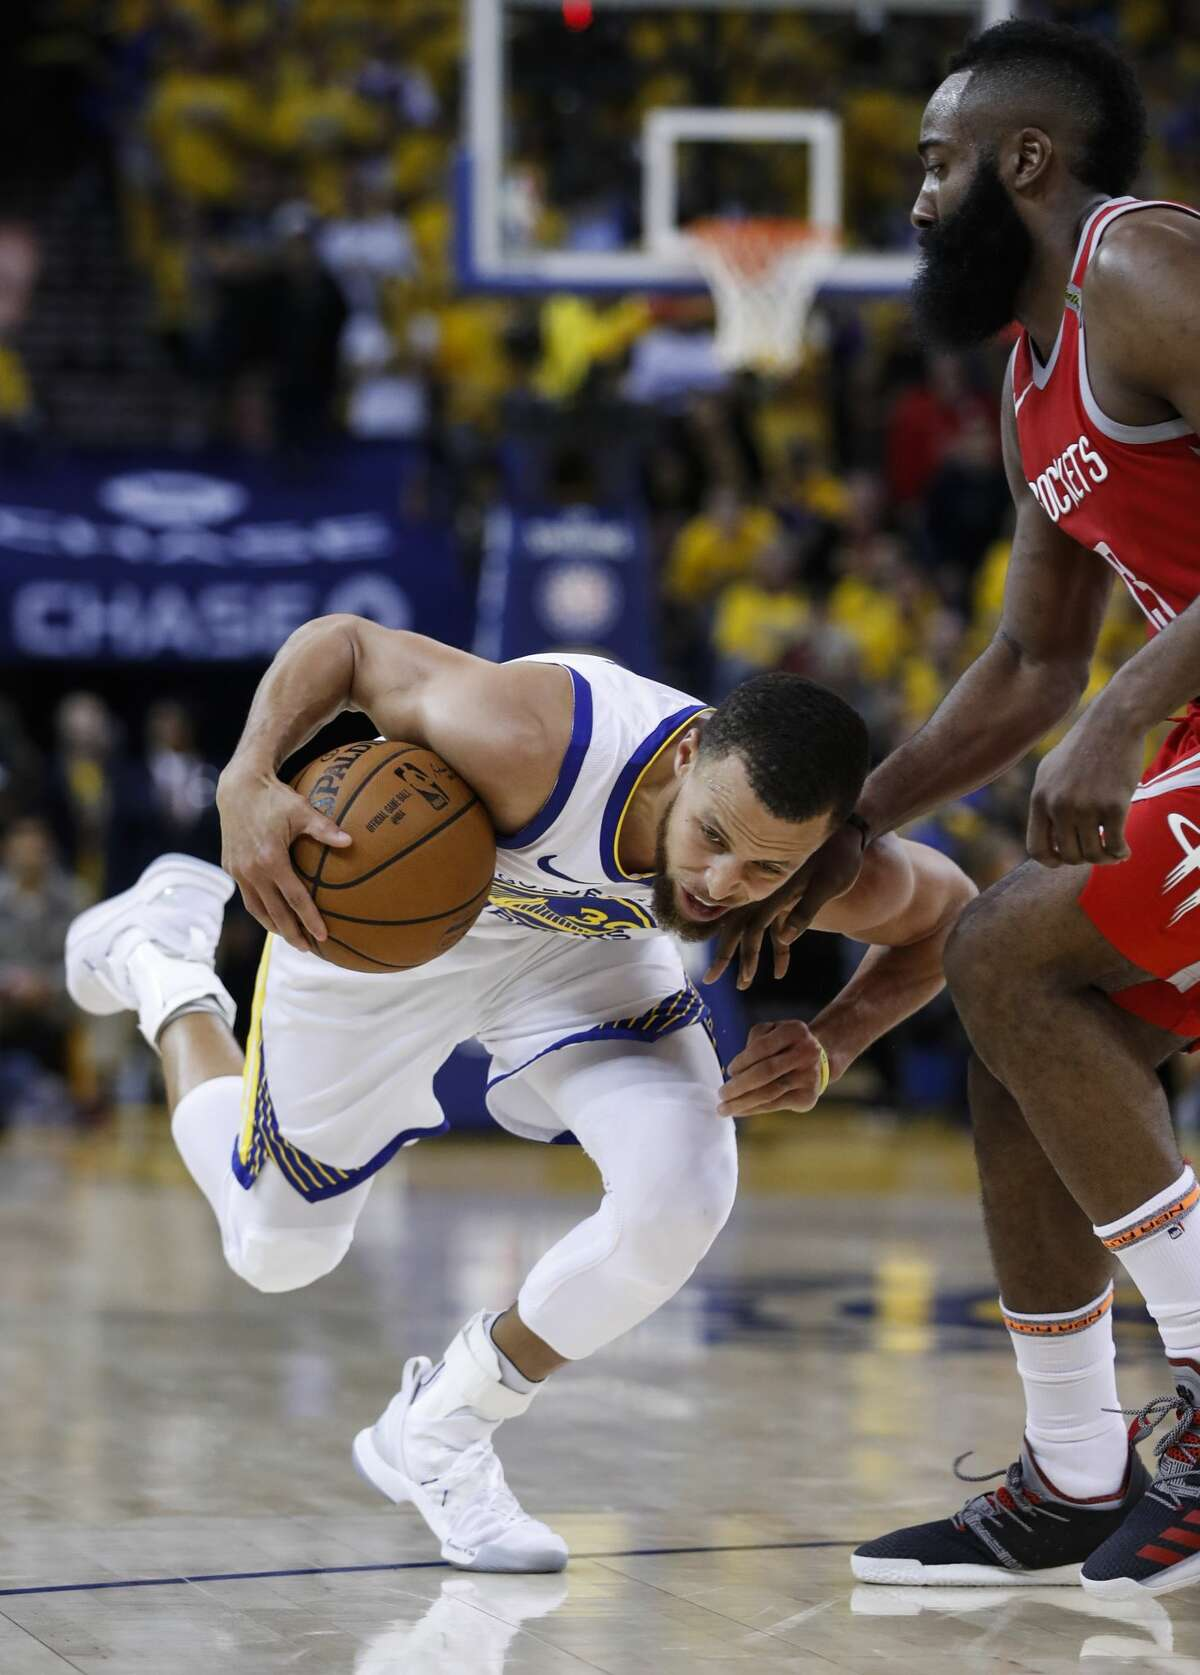 Golden State Warriors guard Stephen Curry (30) takes the ball up the court against Houston Rockets guard James Harden (13) during the second half of Game 6 of the NBA Western Conference Finals at Oracle Arena, Saturday, May 26, 2018, in Oakland. ( Karen Warren / Houston Chronicle )